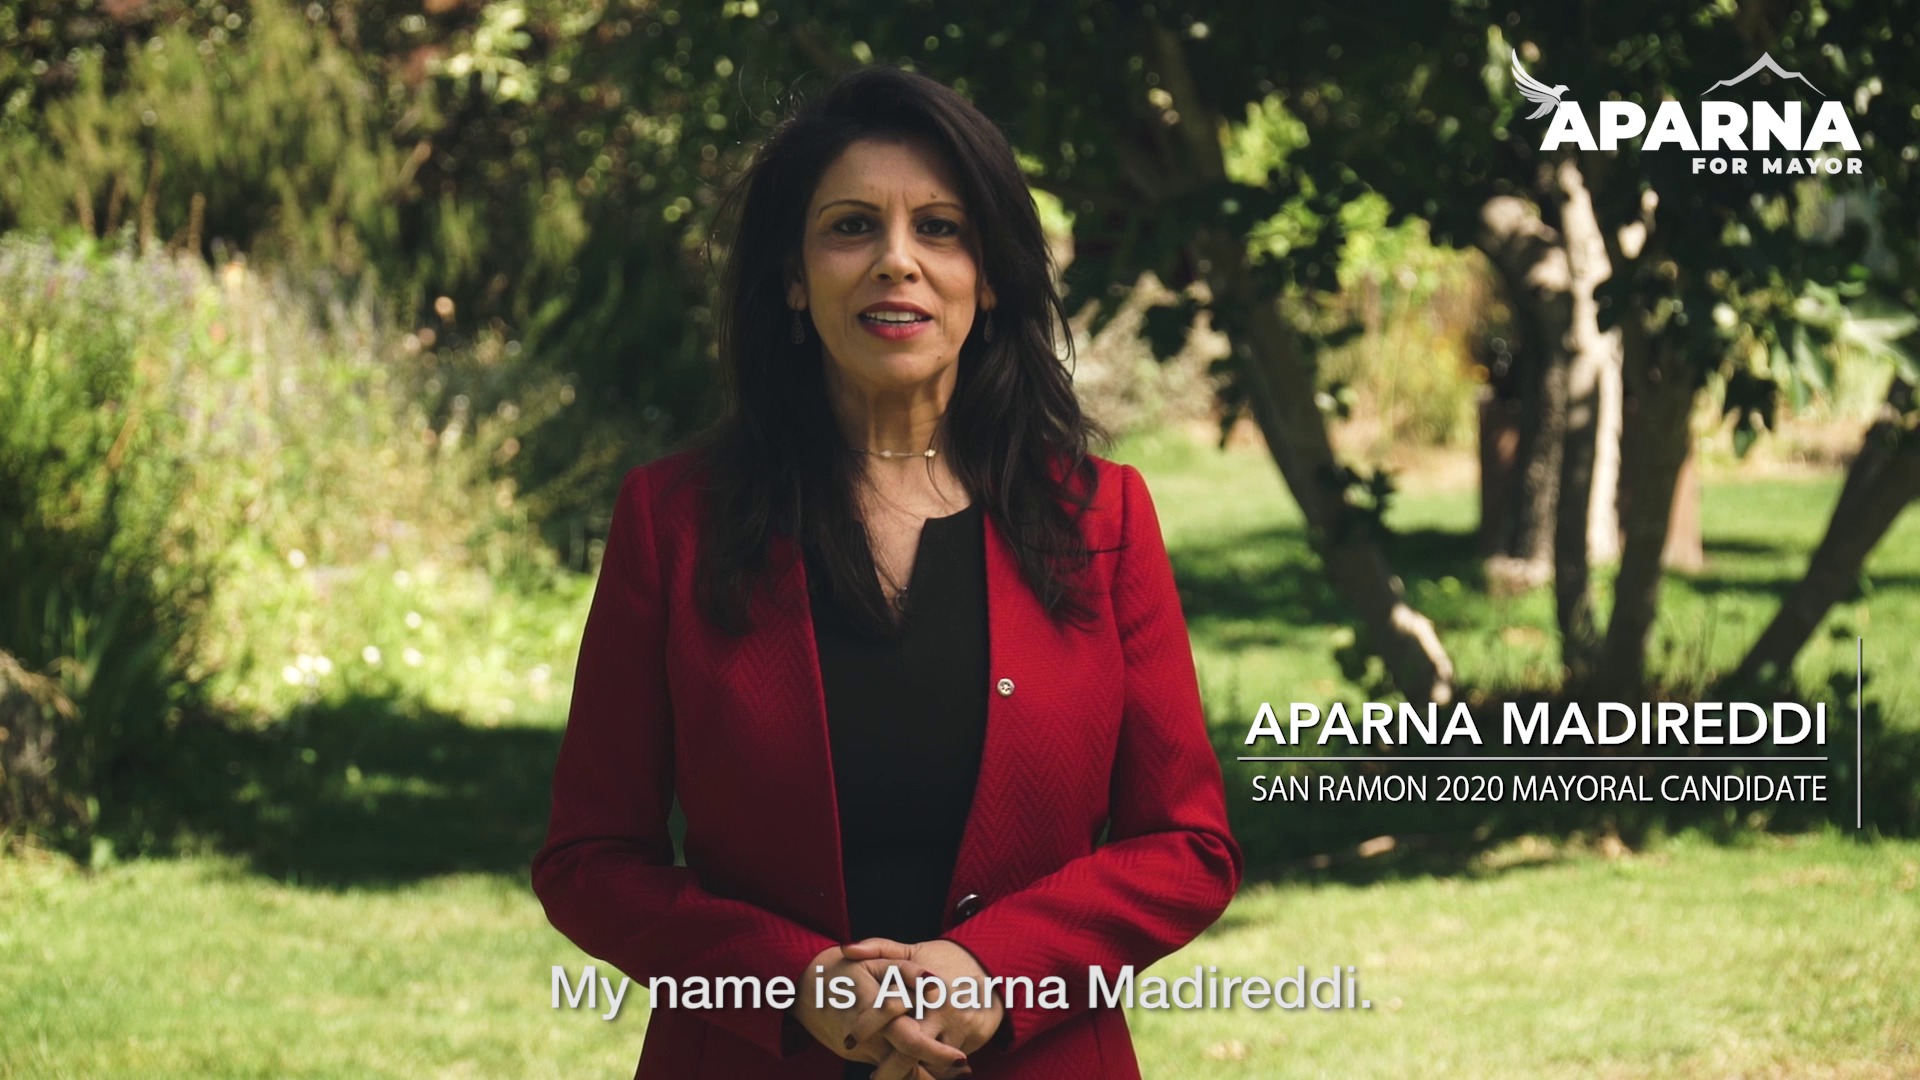 Aparna Madireddi for San Ramon Mayor